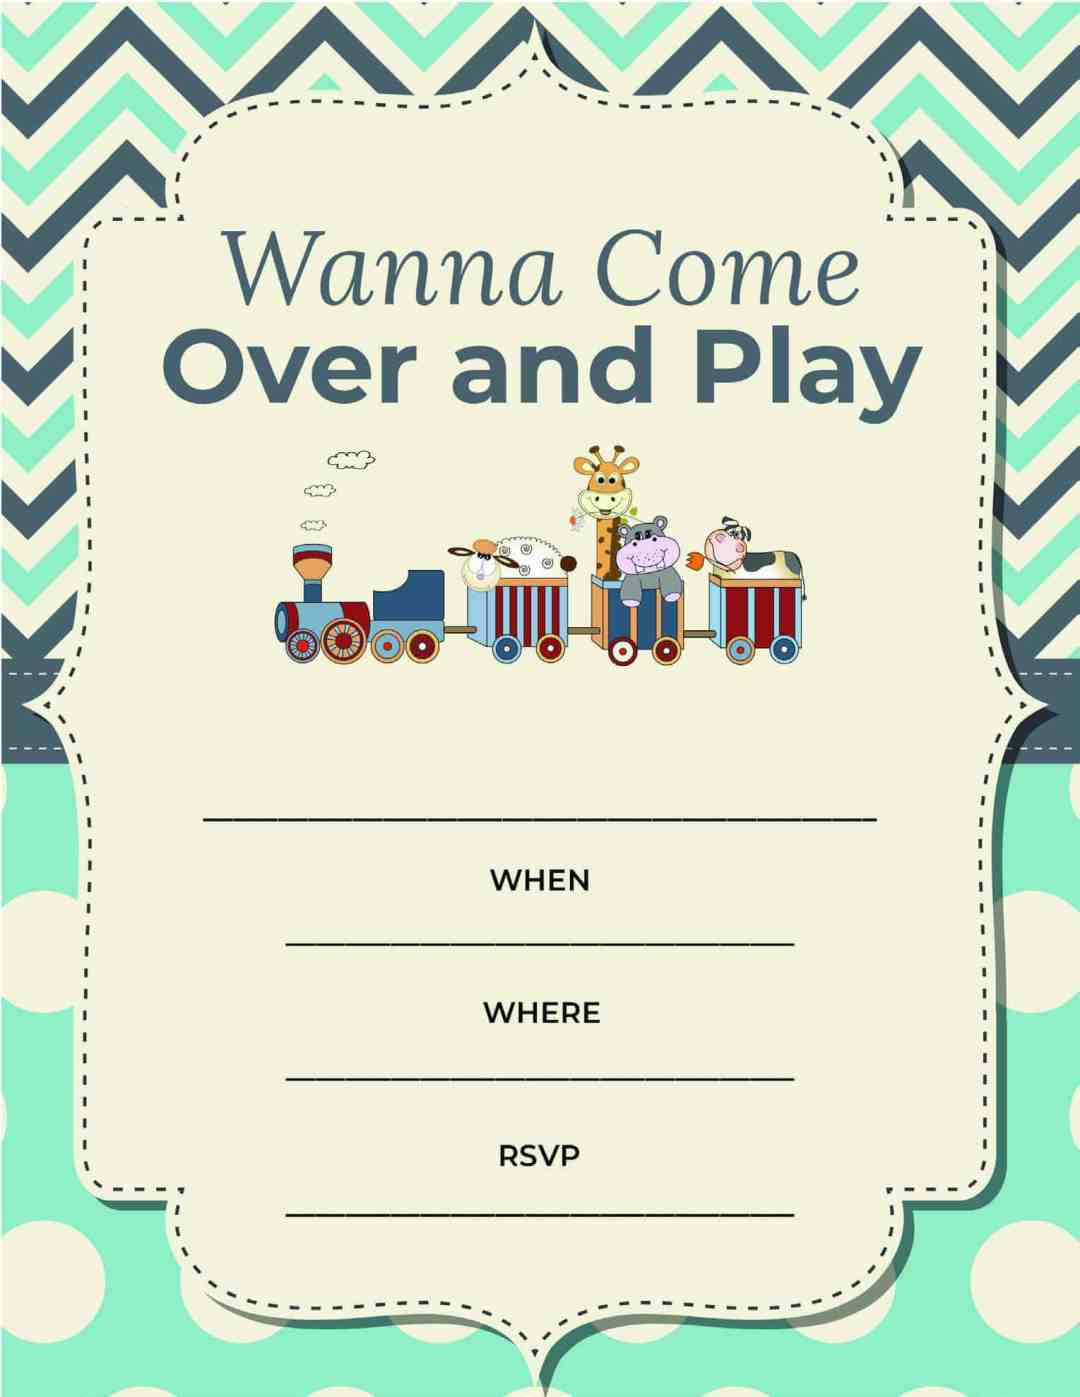 Play Date - Wanna Come Over and Play - All Free Invitations